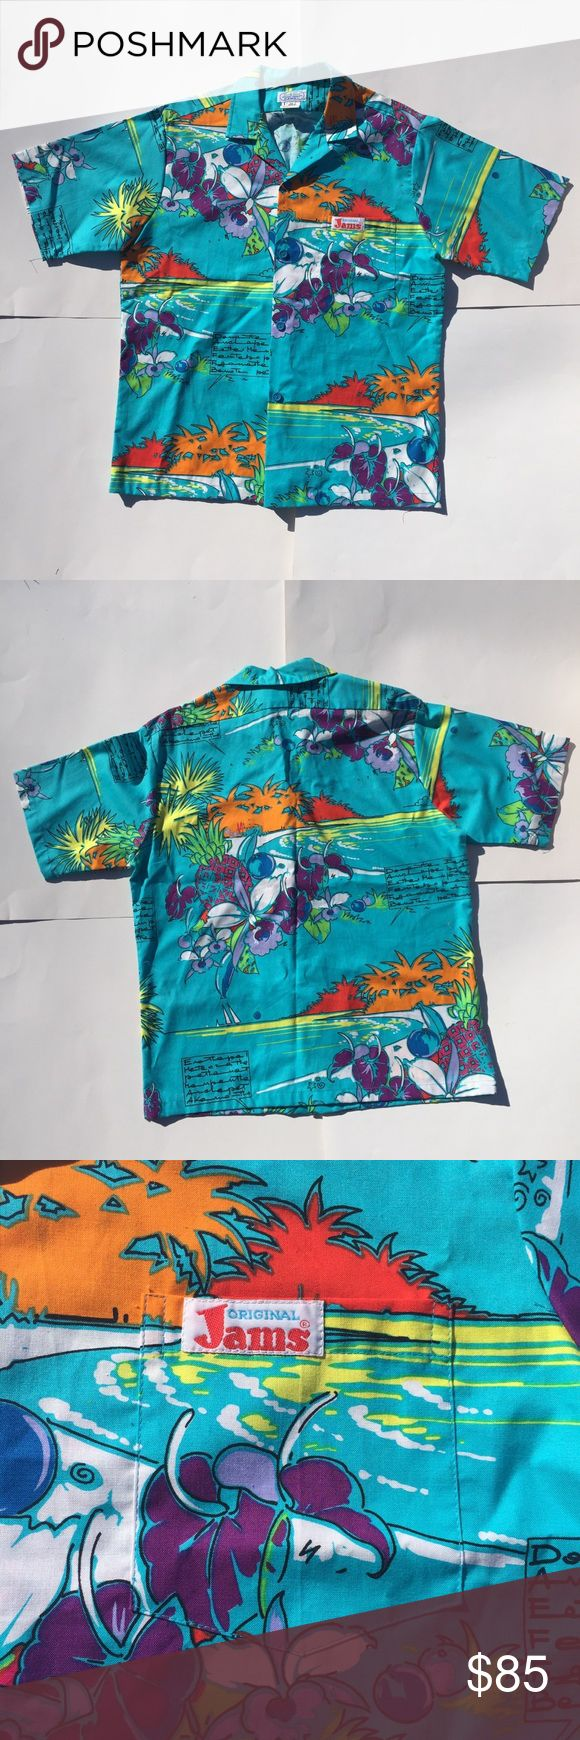 Vintage Hawaiian Shirt M Original Jams Surf Line Original Jams Hawaiian shirt size M. In excellent condition. Measurements provided upon request!   Tags: vintage, surf line Hawaii beach floral Vintage Shirts Casual Button Down Shirts